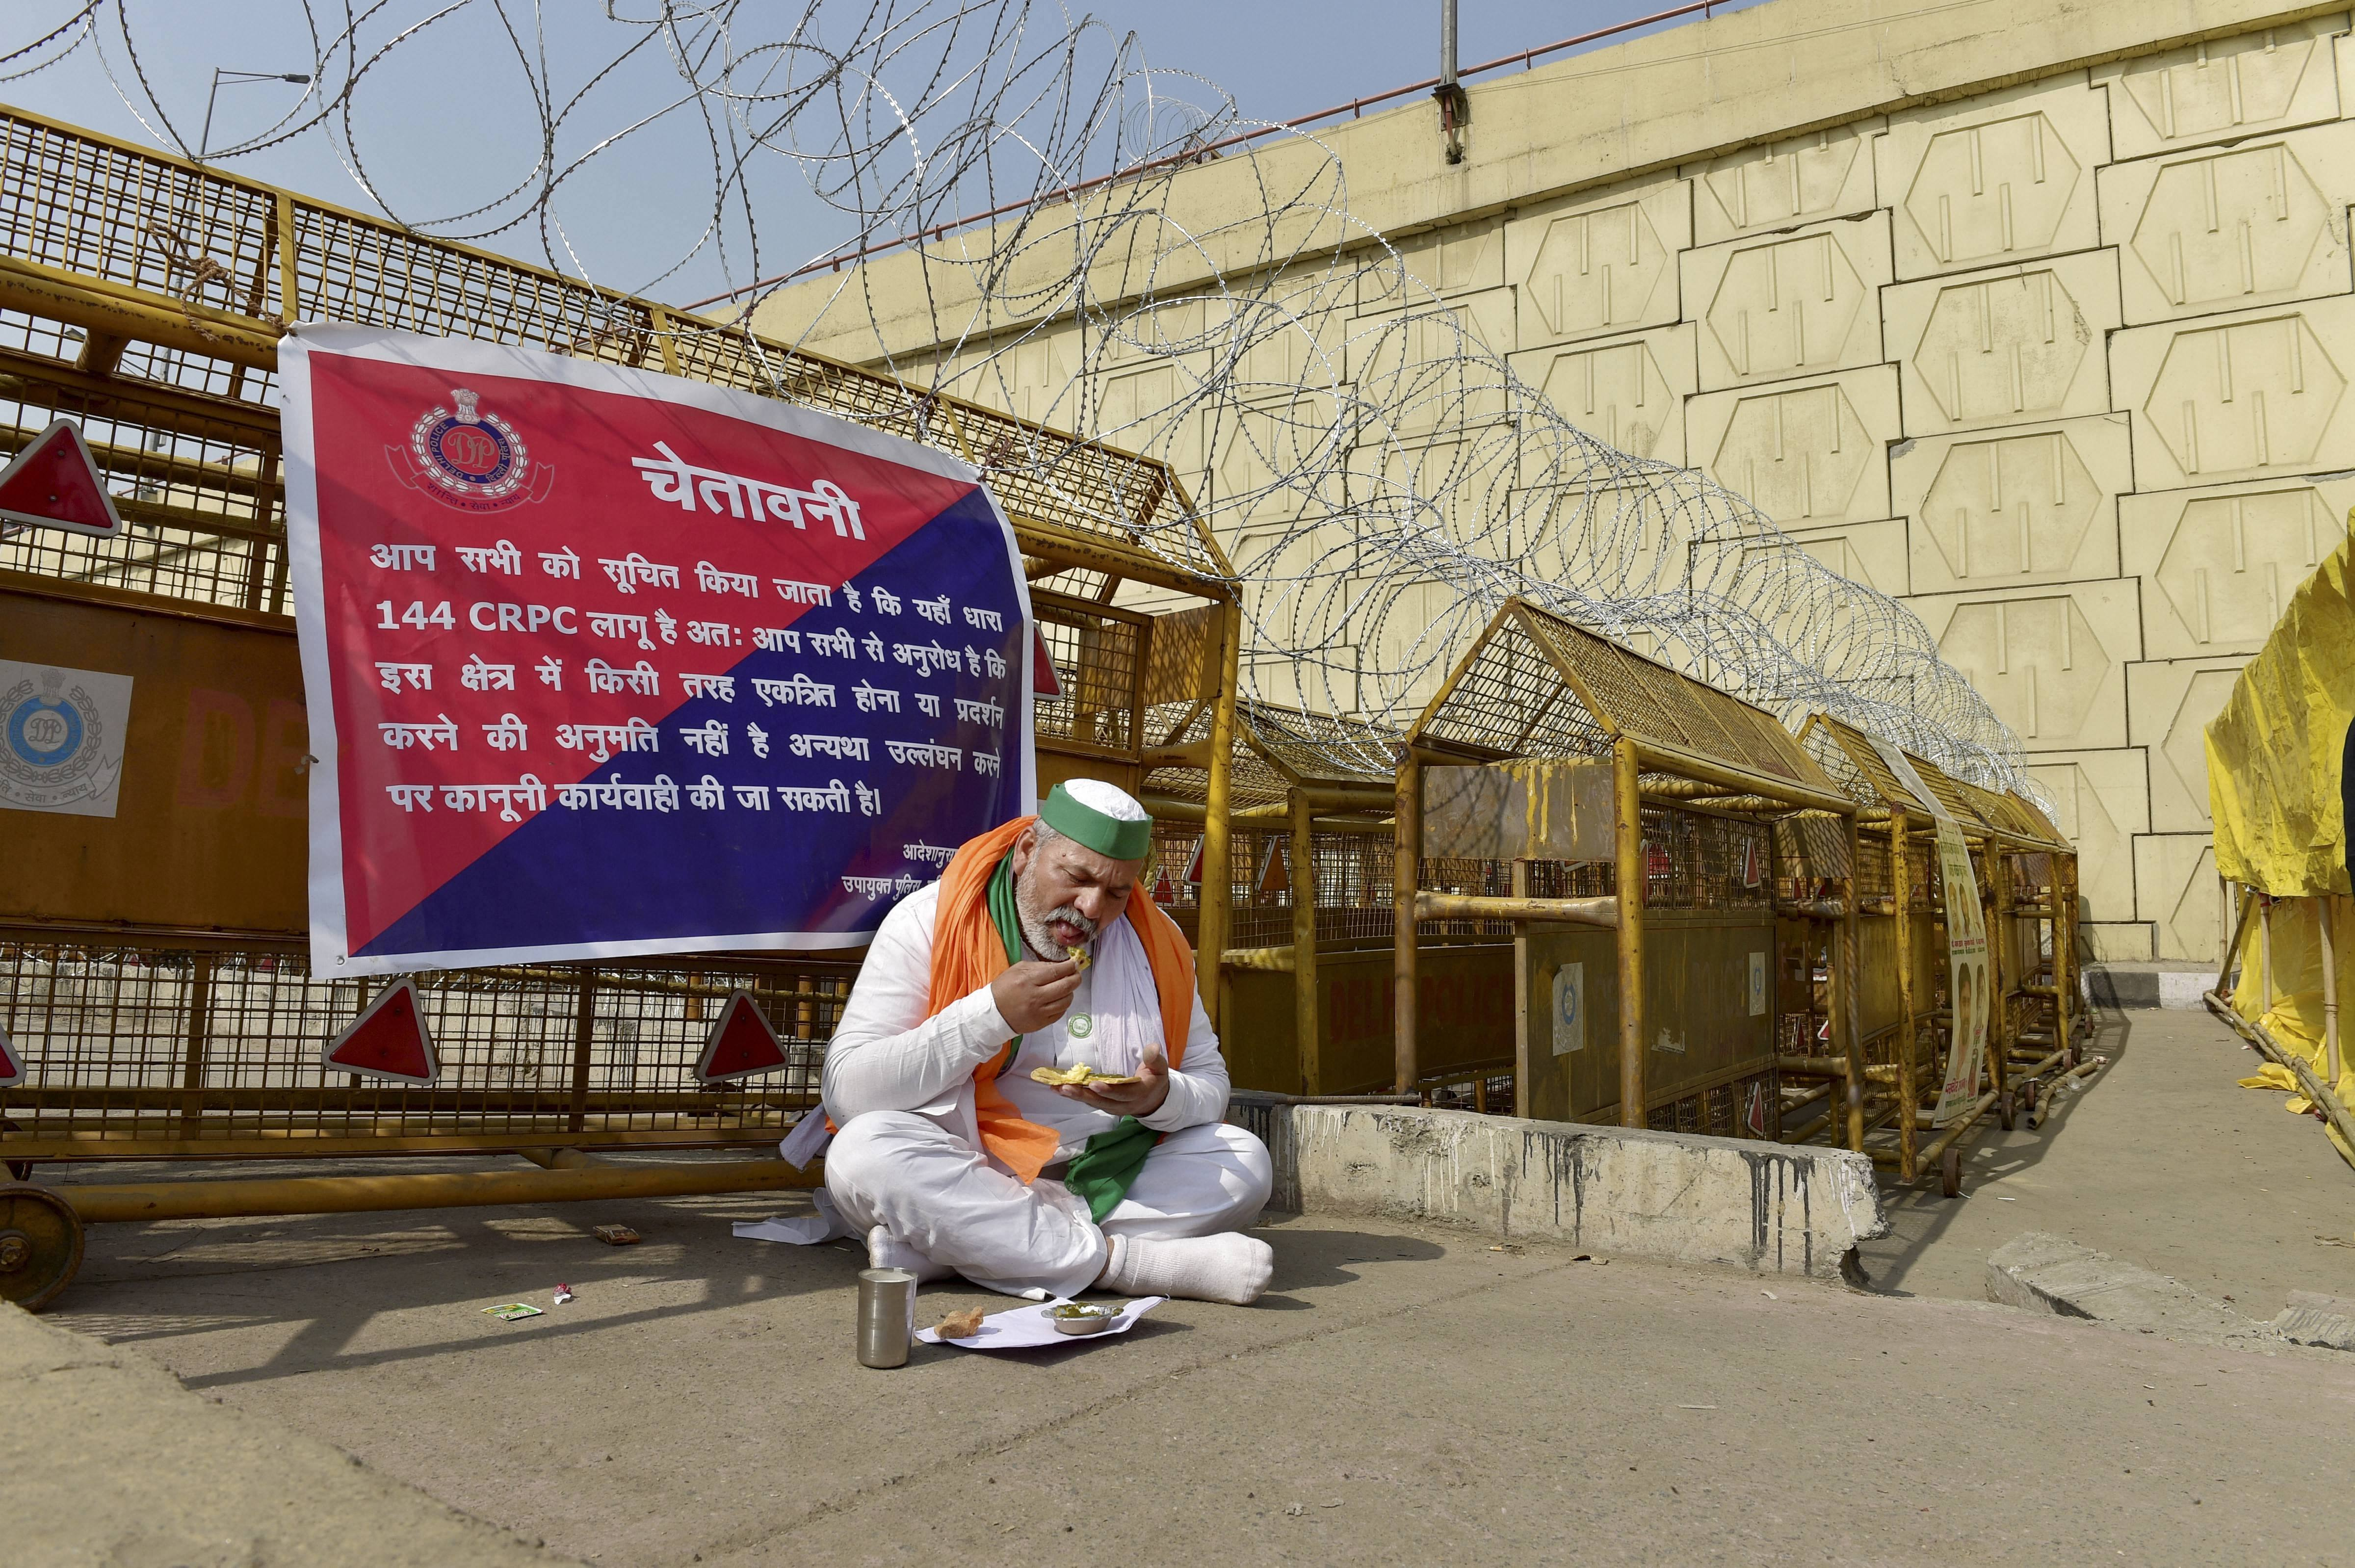 New Delhi: Bharatiya Kisan Union Spokesperson Rakesh Tikait having his meal at Ghazipur border during farmers' ongoing protest against the new farm laws, in New Delhi, Tuesday, Feb. 2, 2021. (PTI Photo/Vijay Verma)(PTI02_02_2021_000070B)